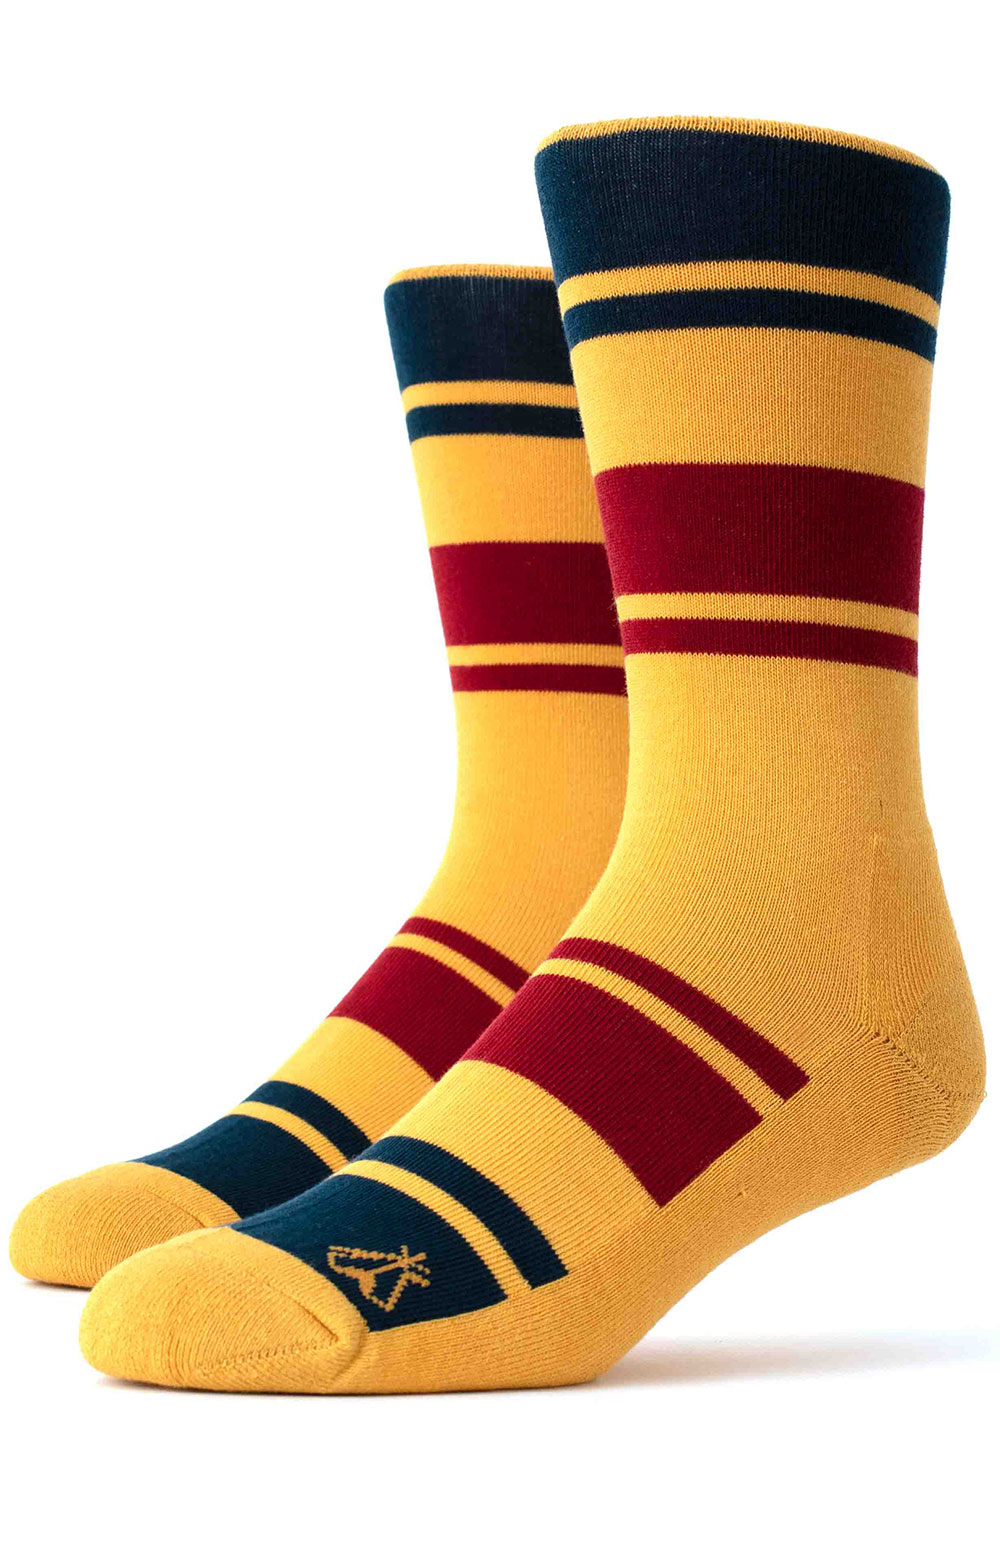 Yellowstone Crew Sock - Stripe Yellow